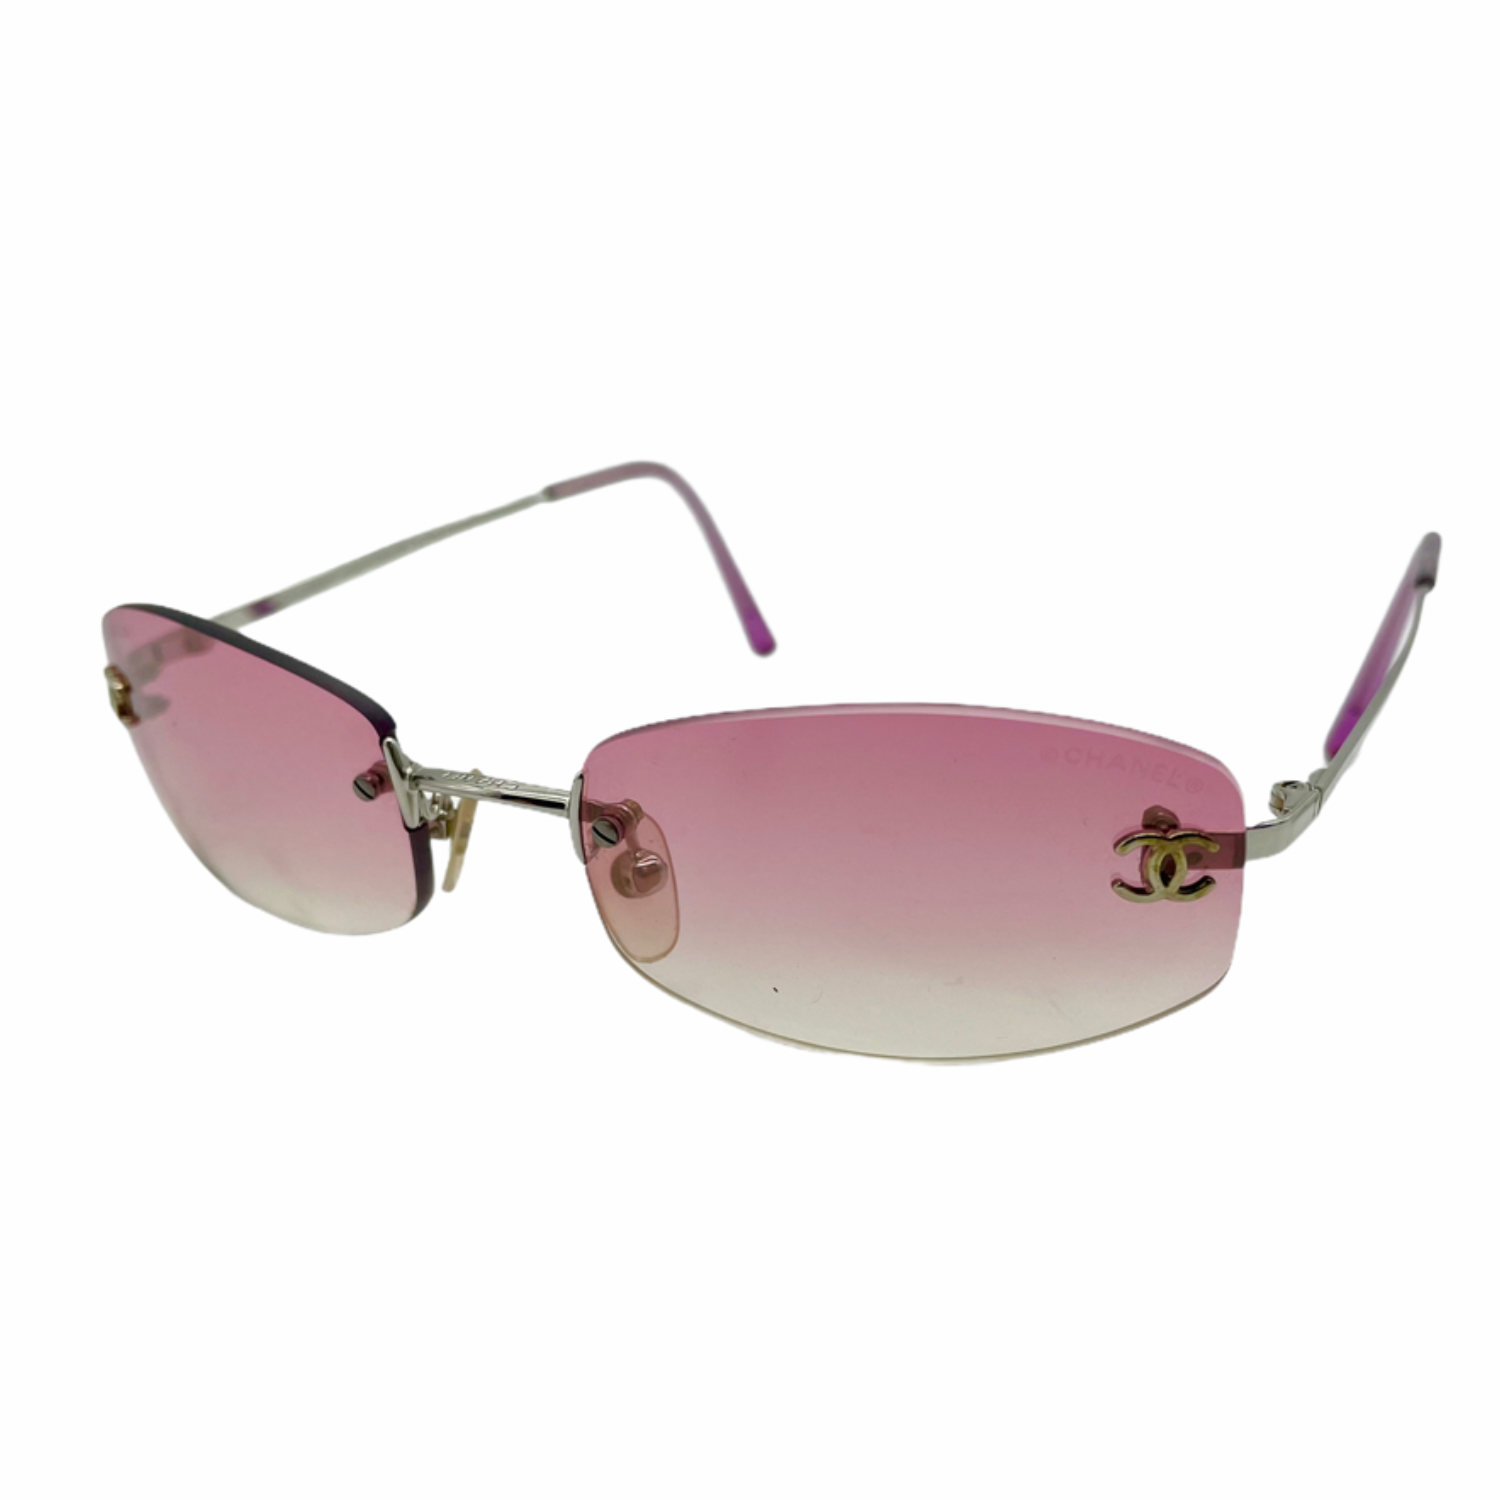 Vintage Chanel Rimless Tinted Sunglasses in Pink | NITRYL